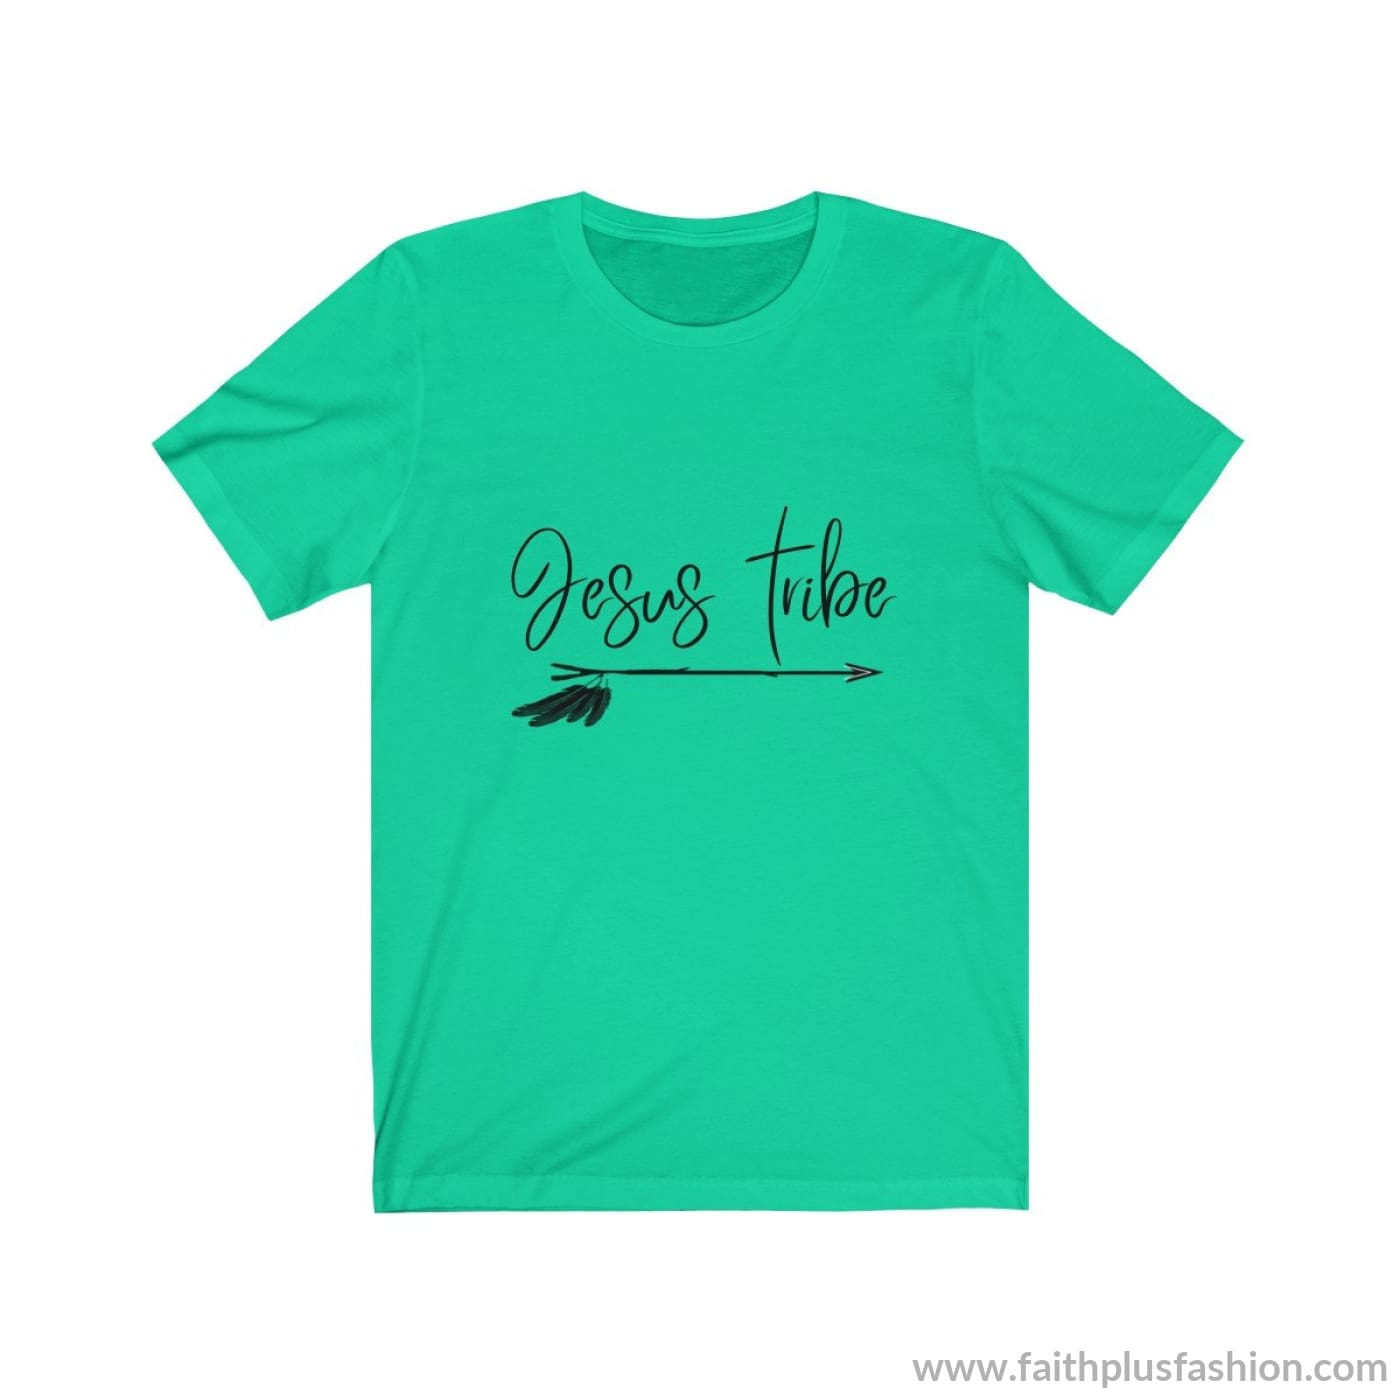 Jesus Tribe Unisex Short Sleeve Tee - Teal / Xs - T-Shirt